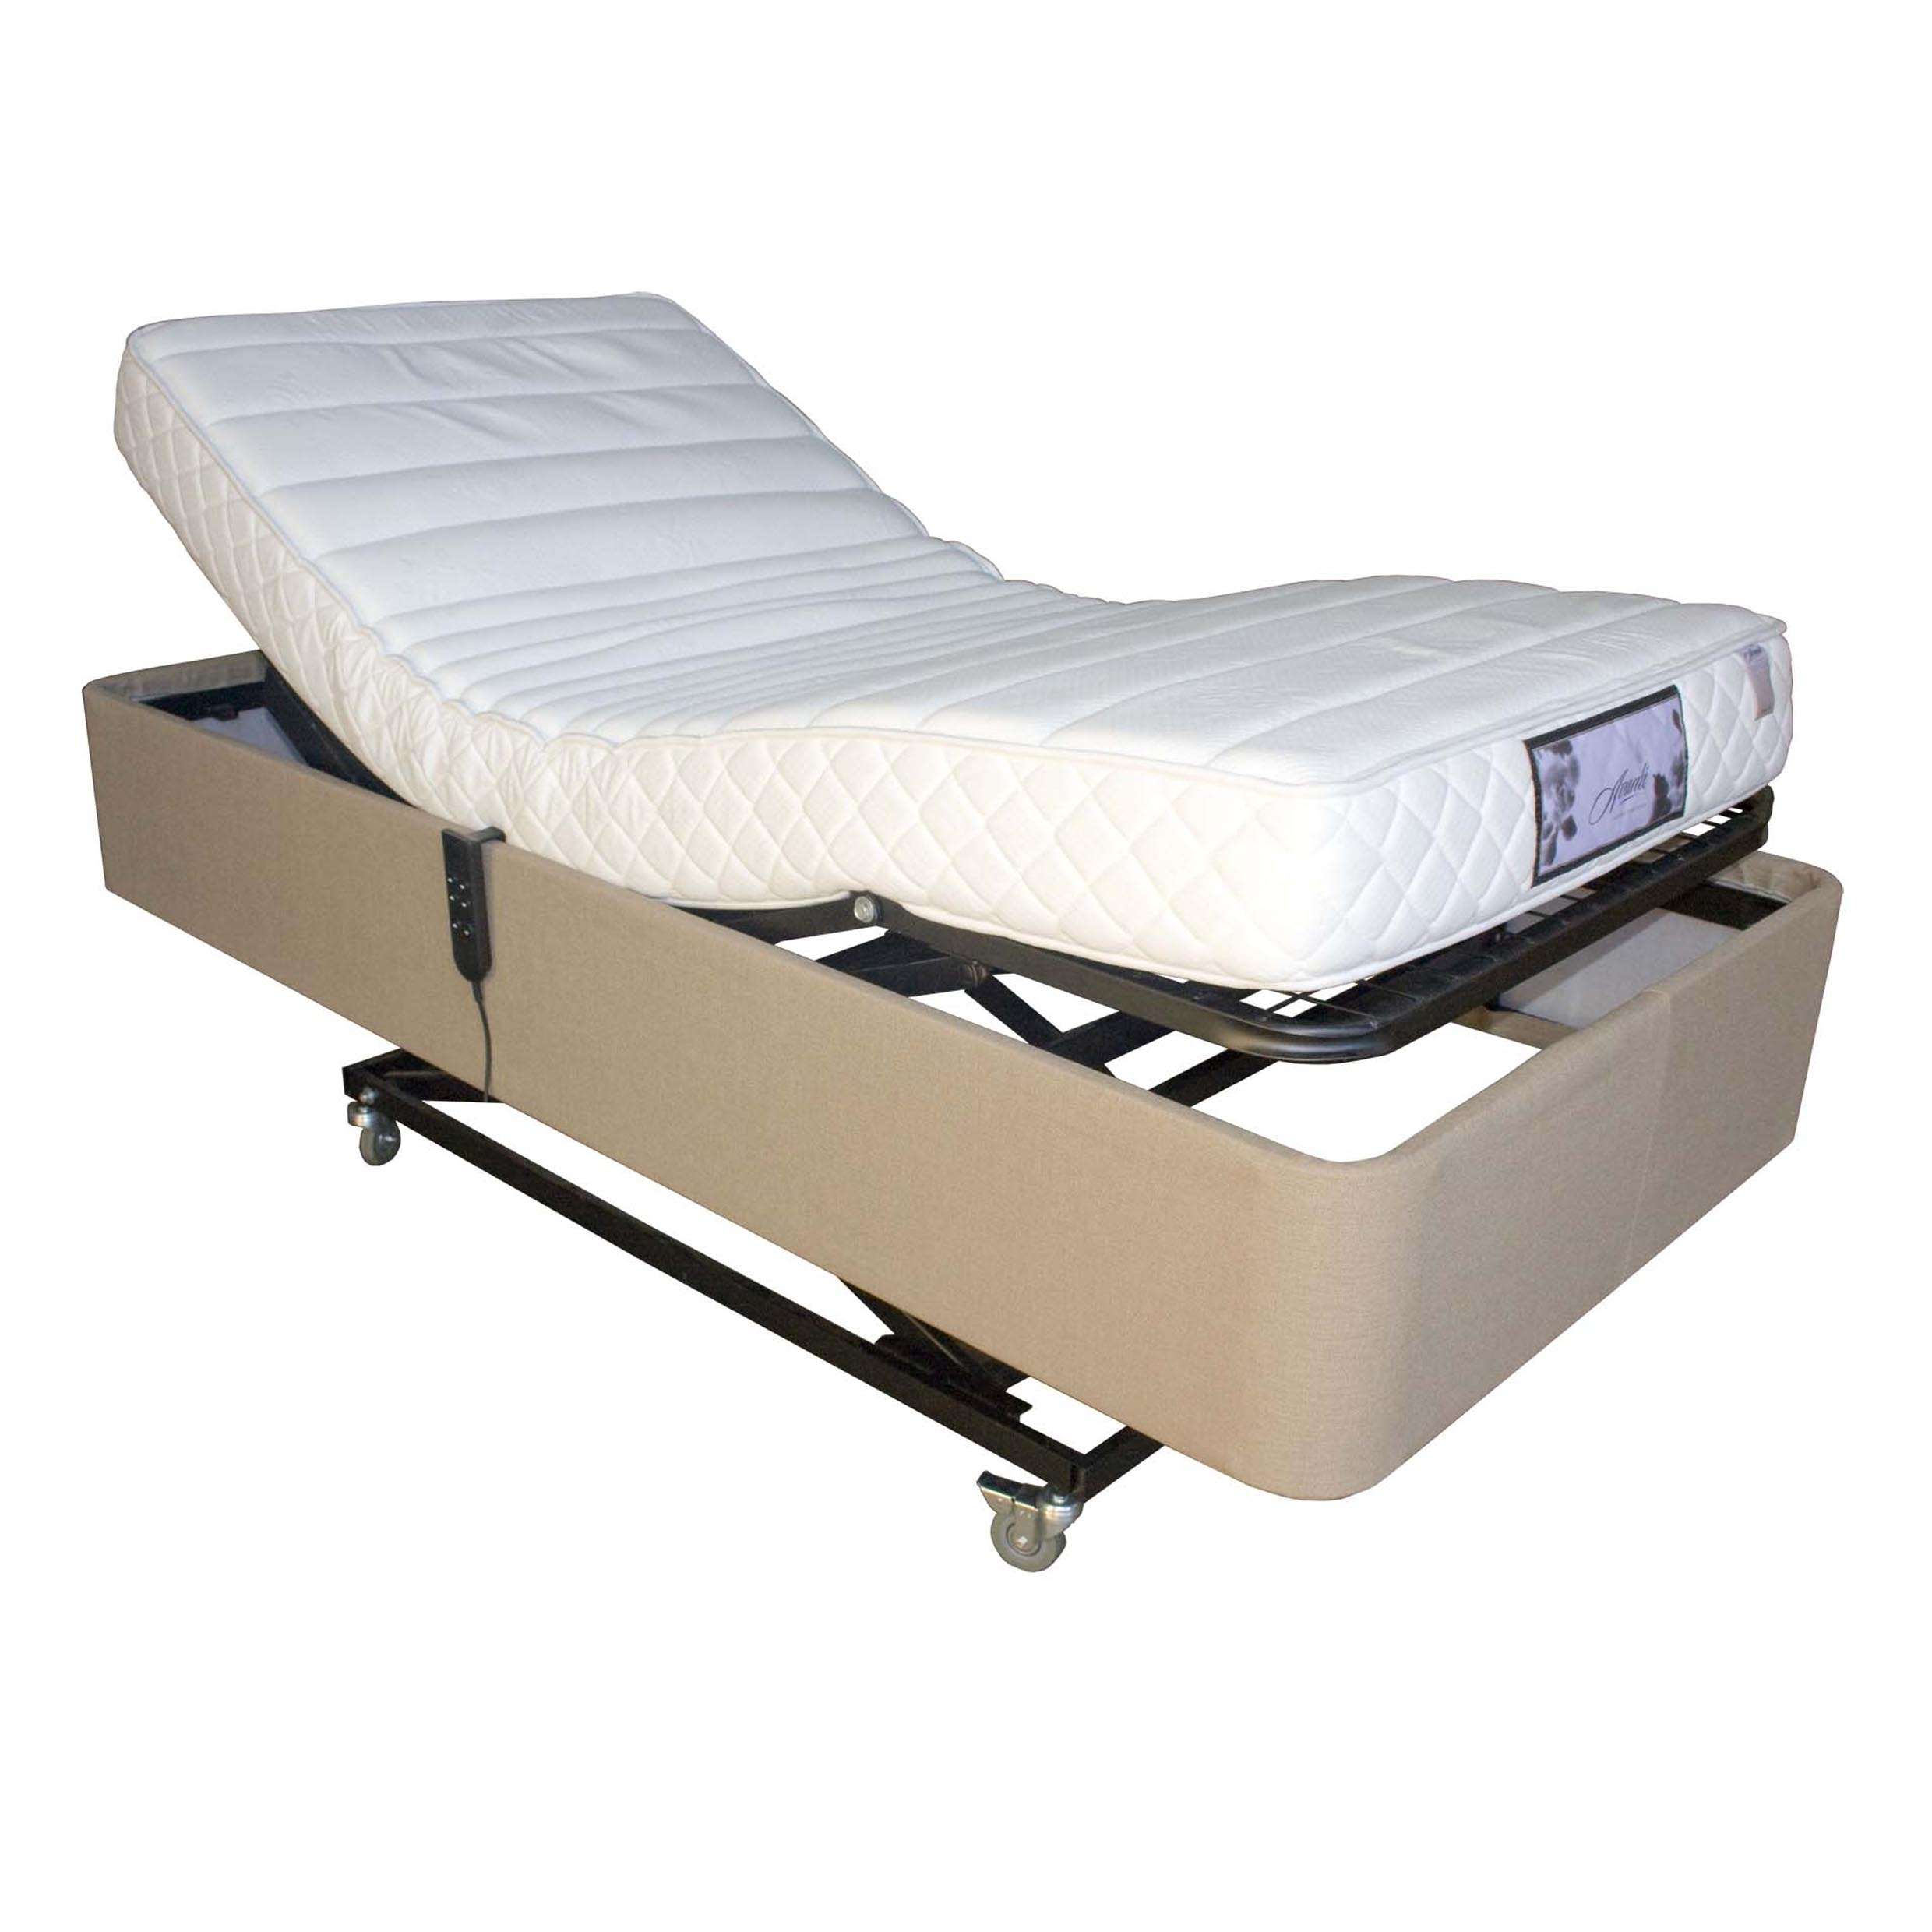 2 3 - Adjustable Beds For Sale 2